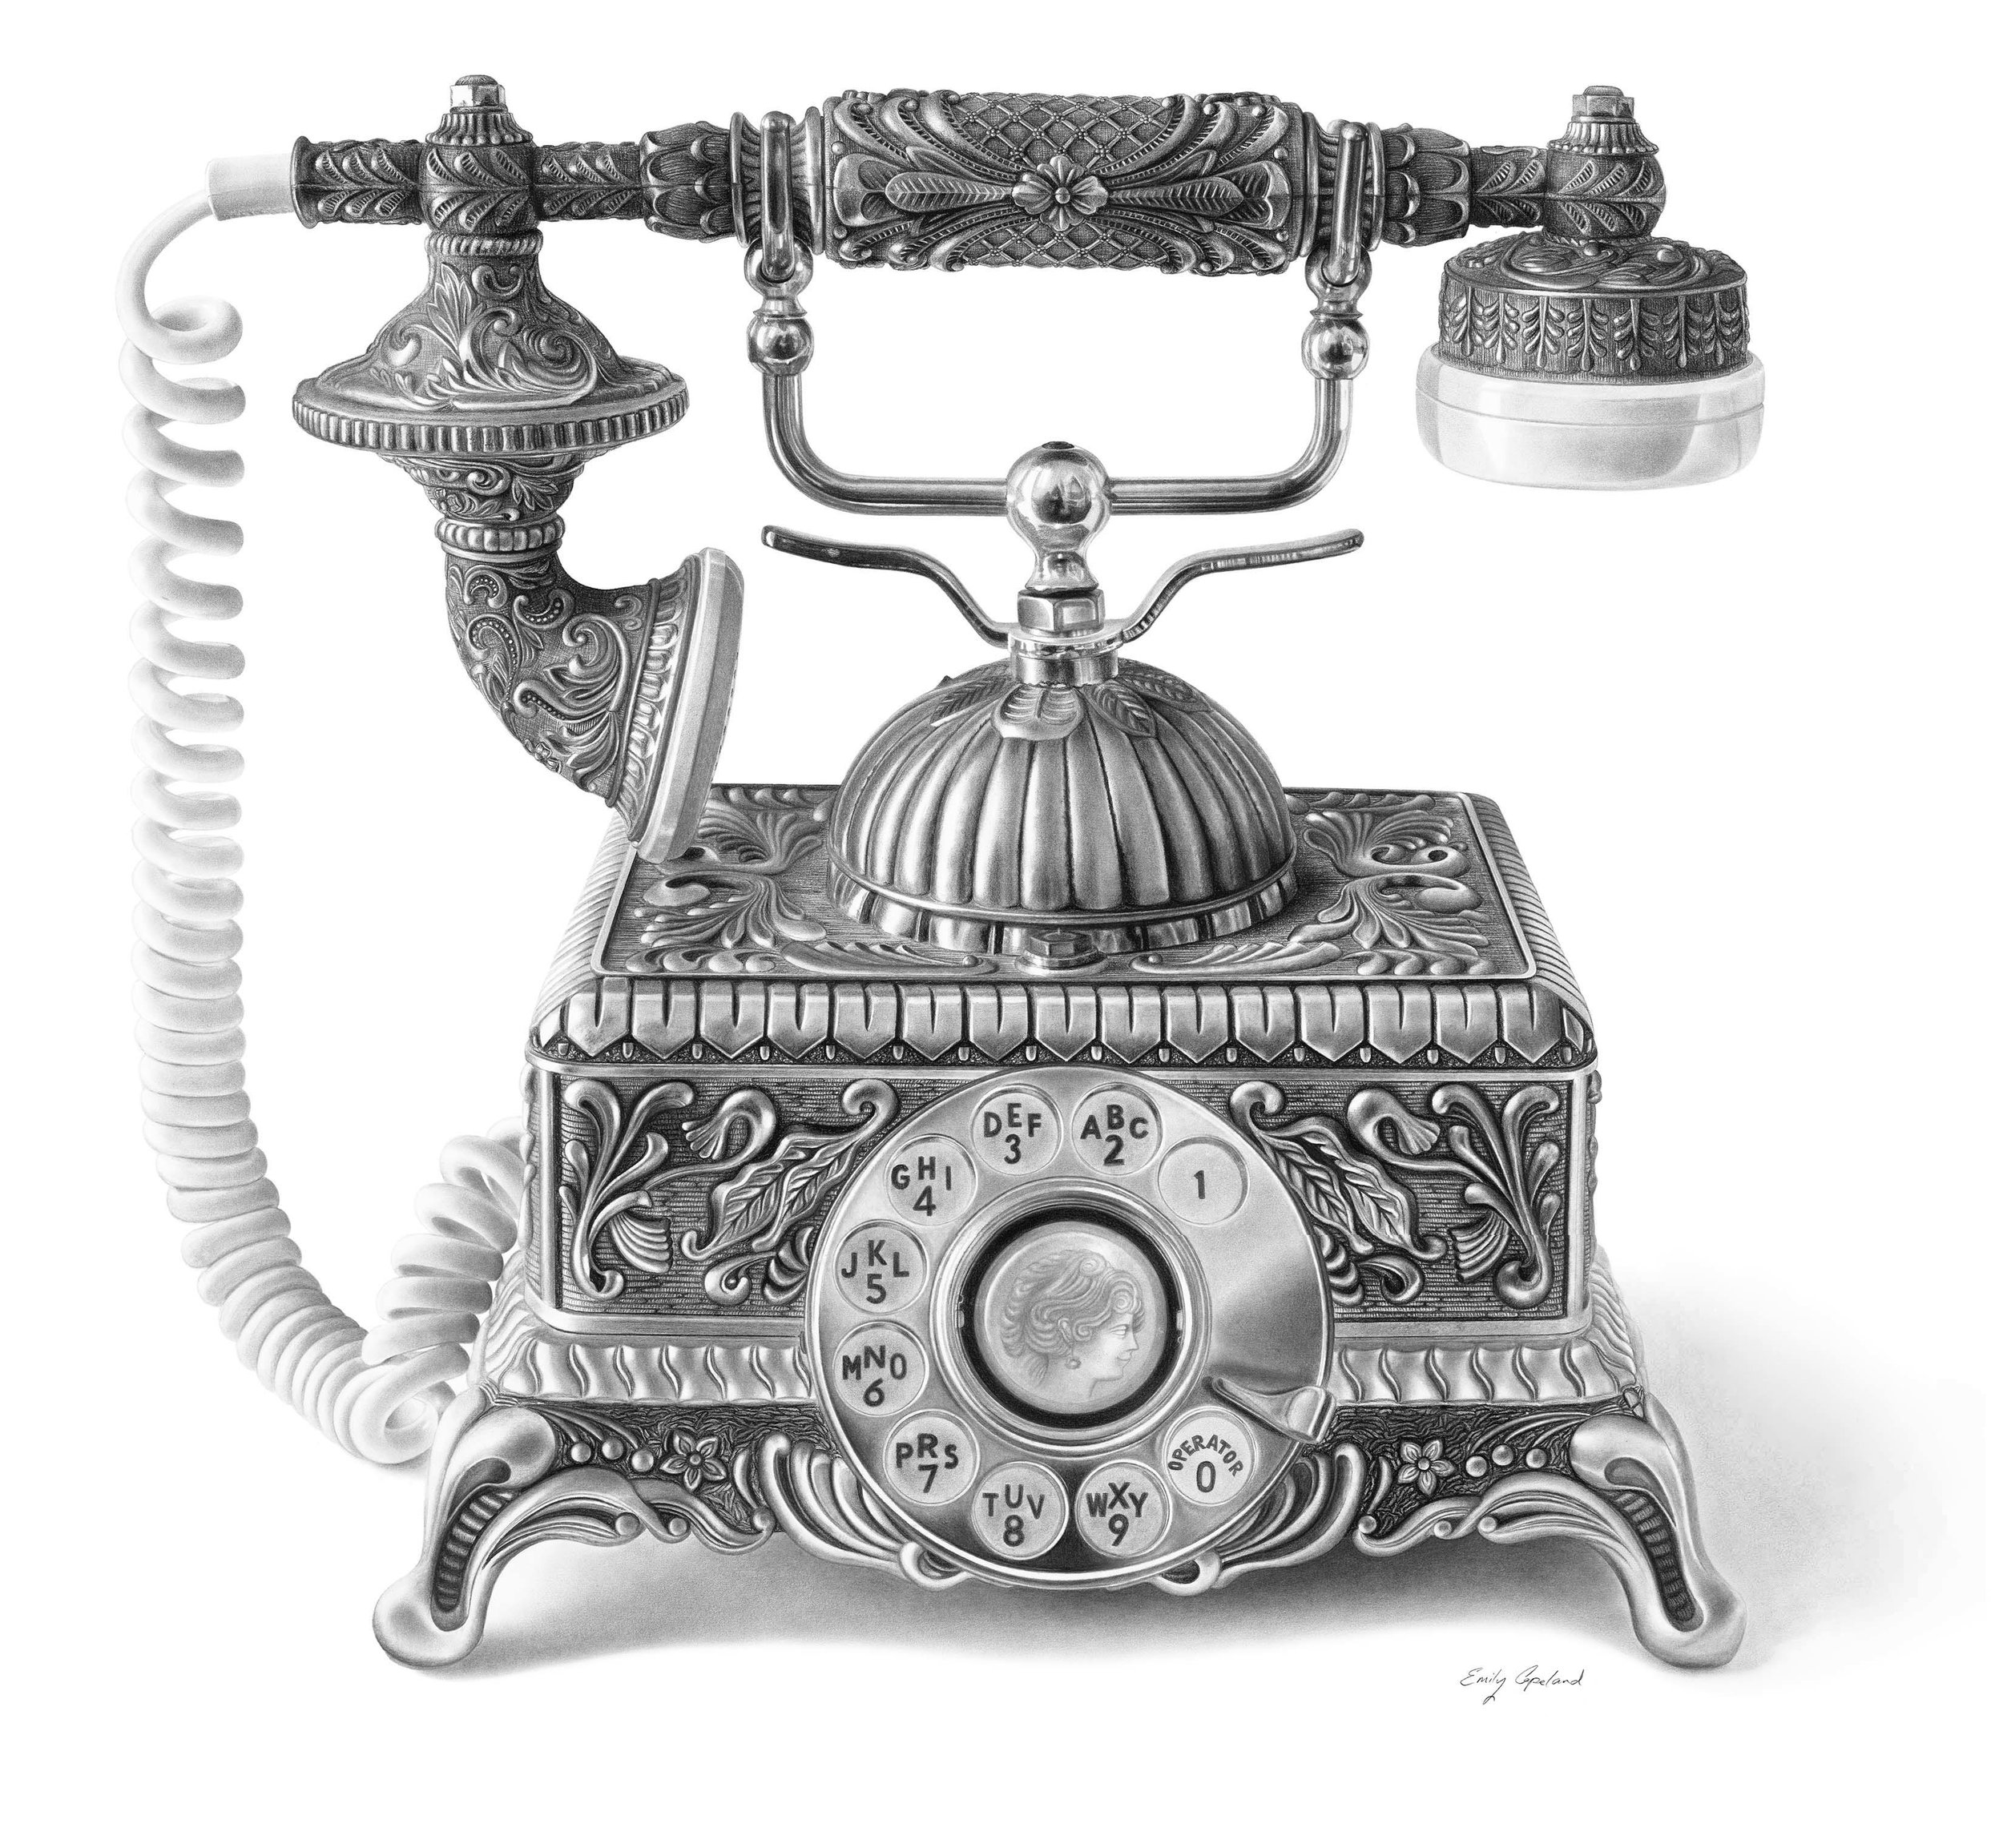 Charcoal Drawing of an Antique Phone